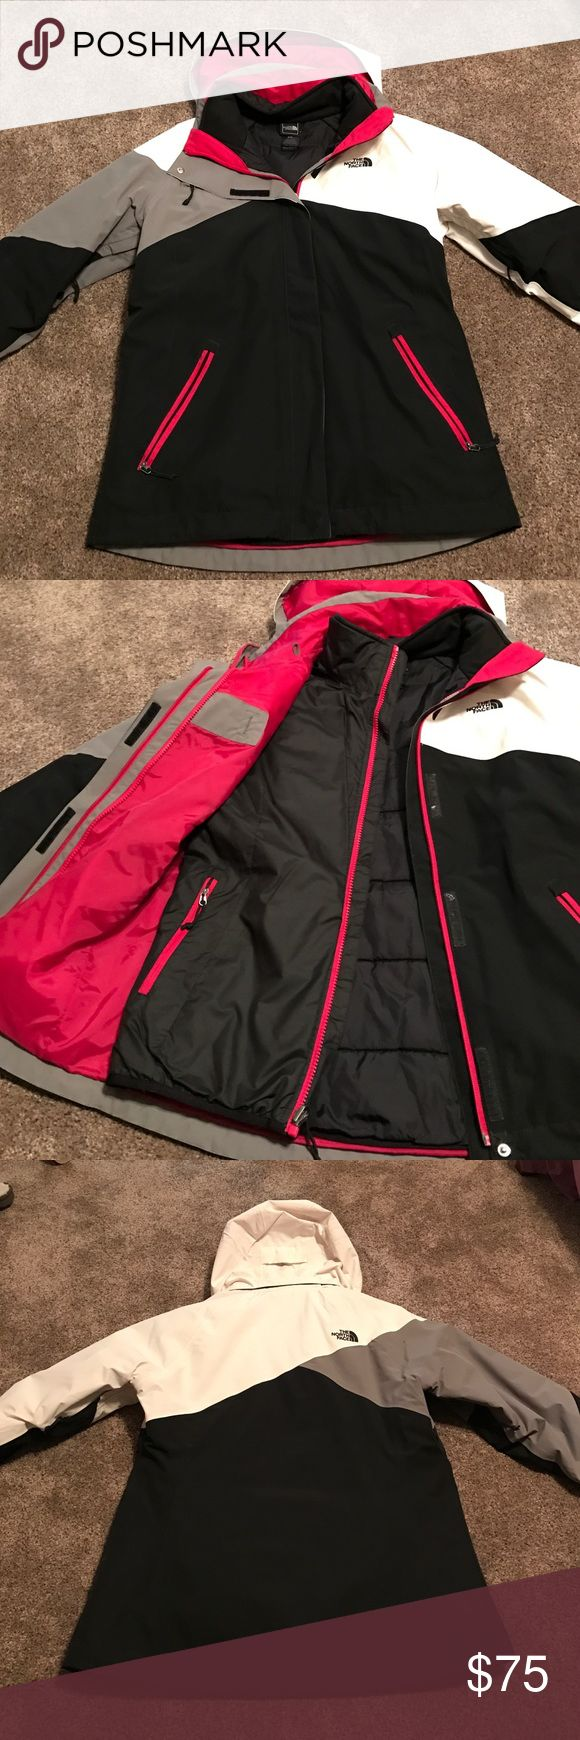 Women's North Face winter coat 3 in 1 Women's North Face 3 in 1 winter coat. Bought this 2 winters ago but only wore it for one winter. This is in EUC. Has the removable inner liner. Very warm for winter. Has a detachable hood. The colors are so cute! Size Medium North Face Jackets & Coats